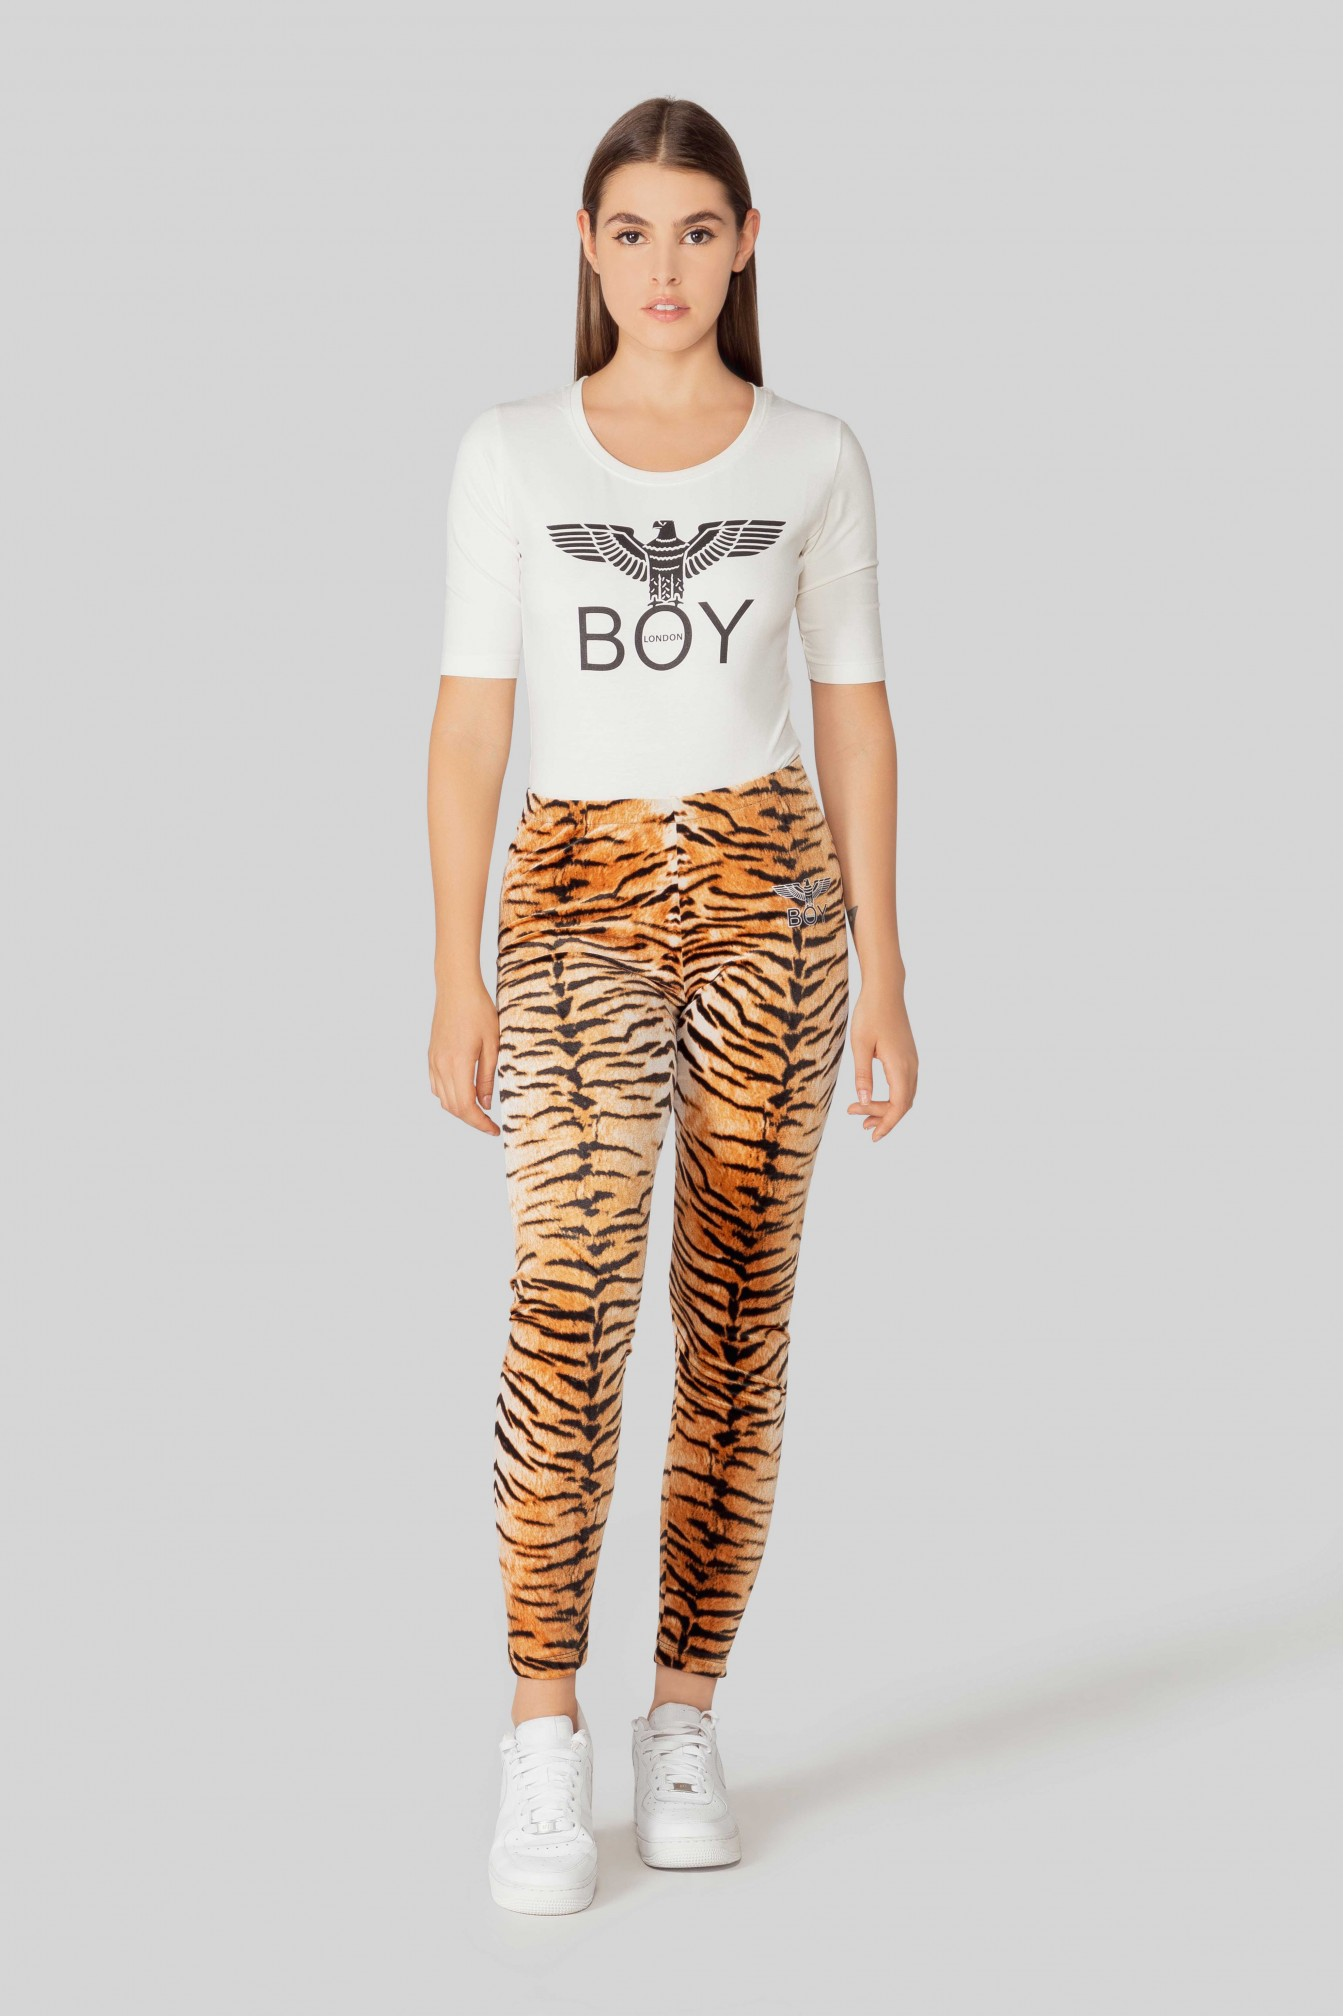 BODY - BLD2617 - BOY LONDON